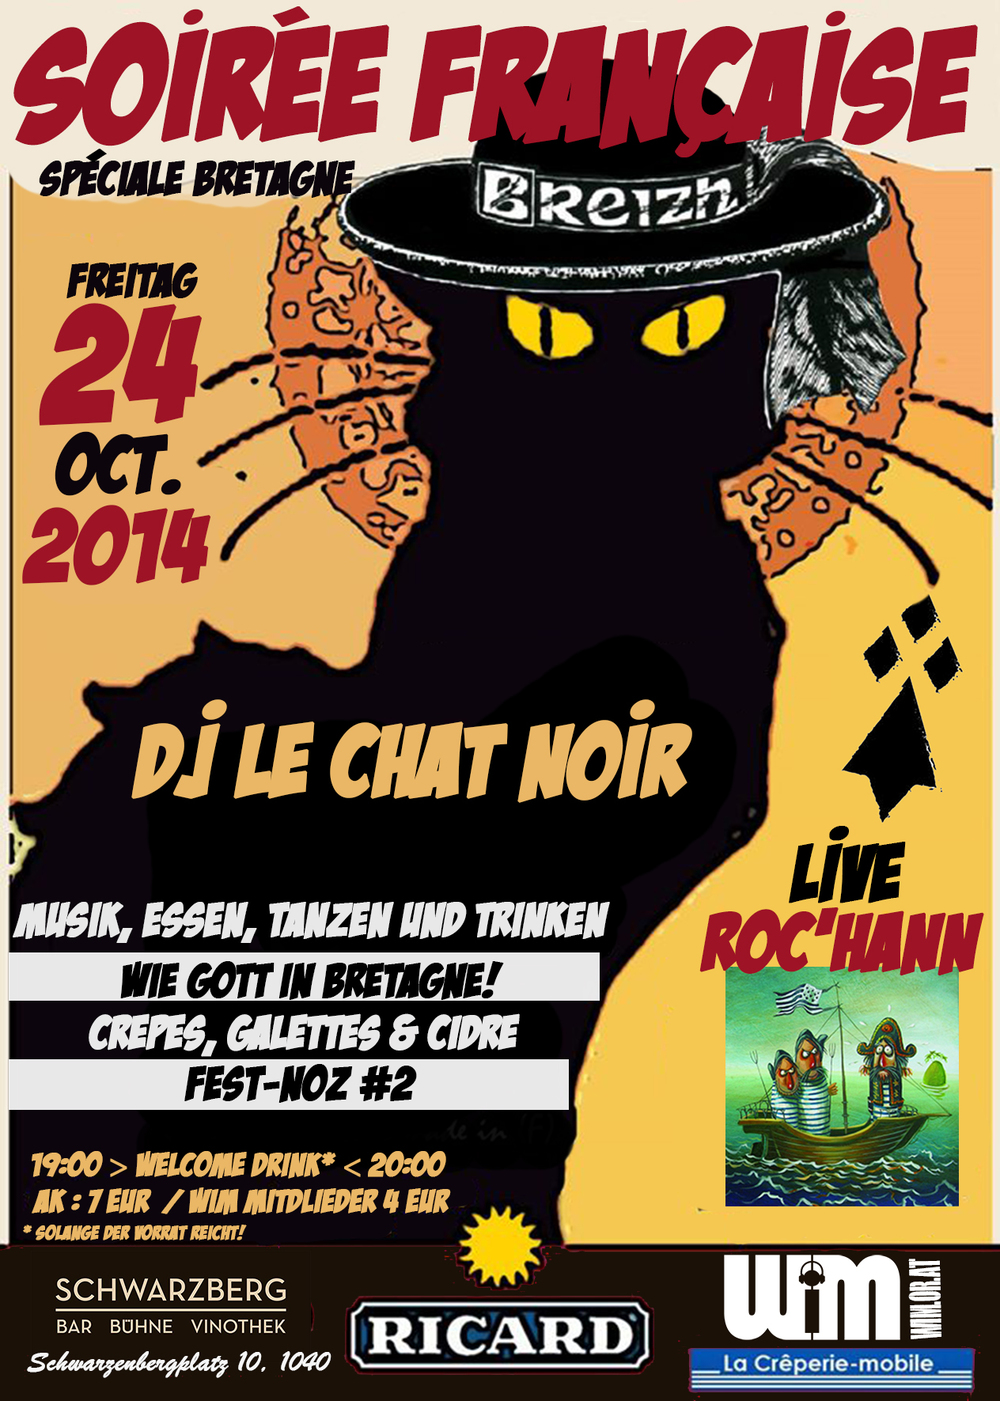 Clic on the black cat to join us !